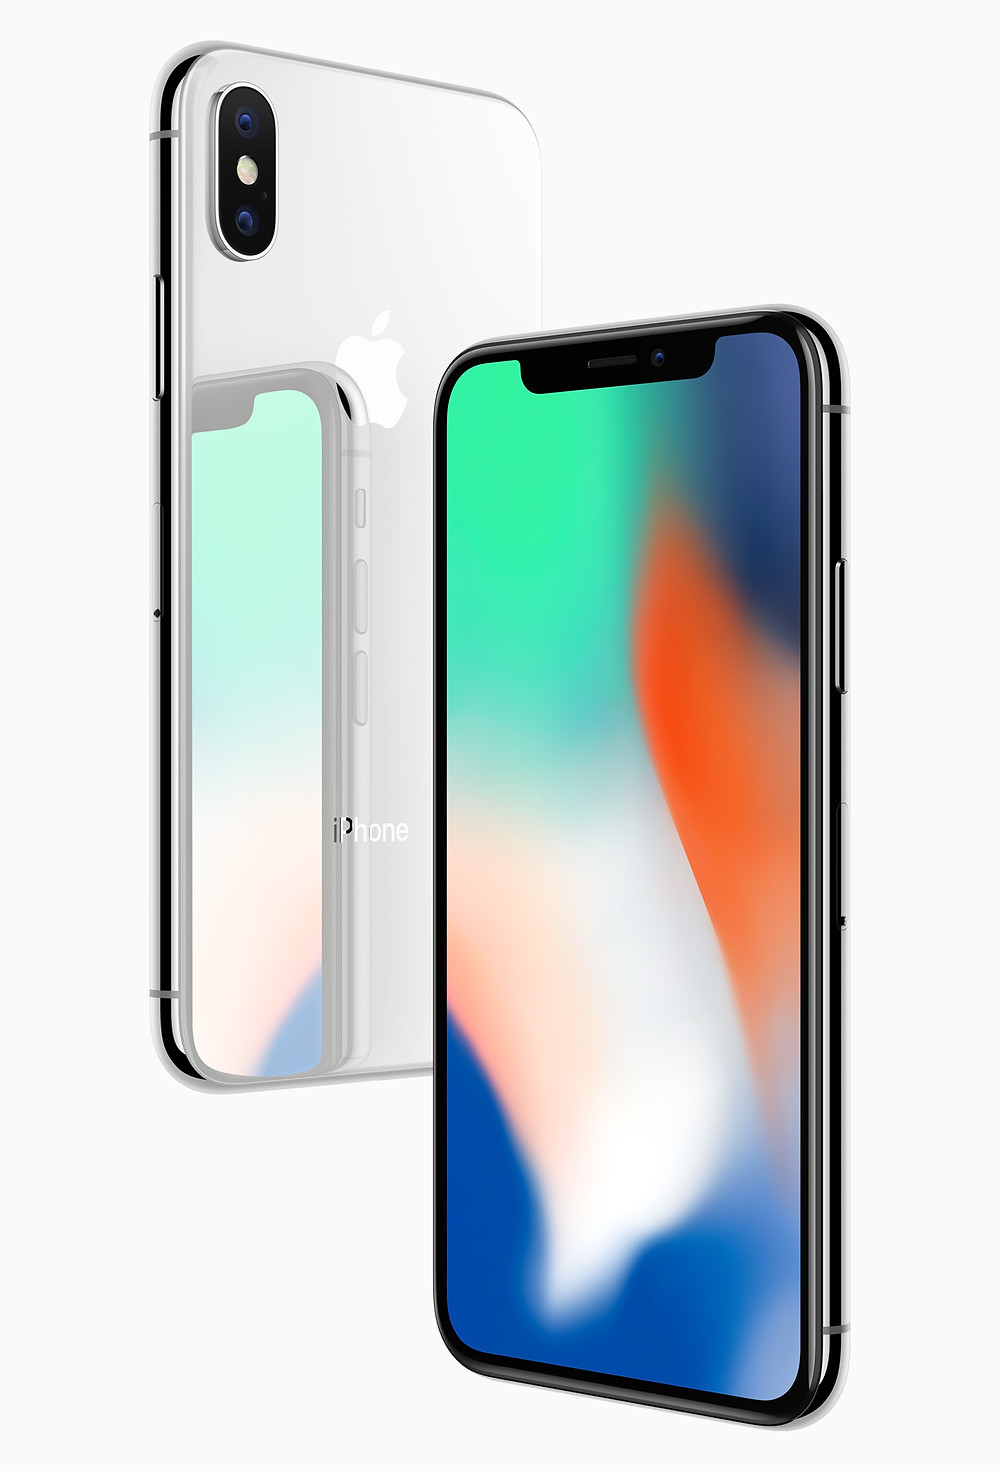 Front and rear view of iPhone X. Source: Apple Newsroom